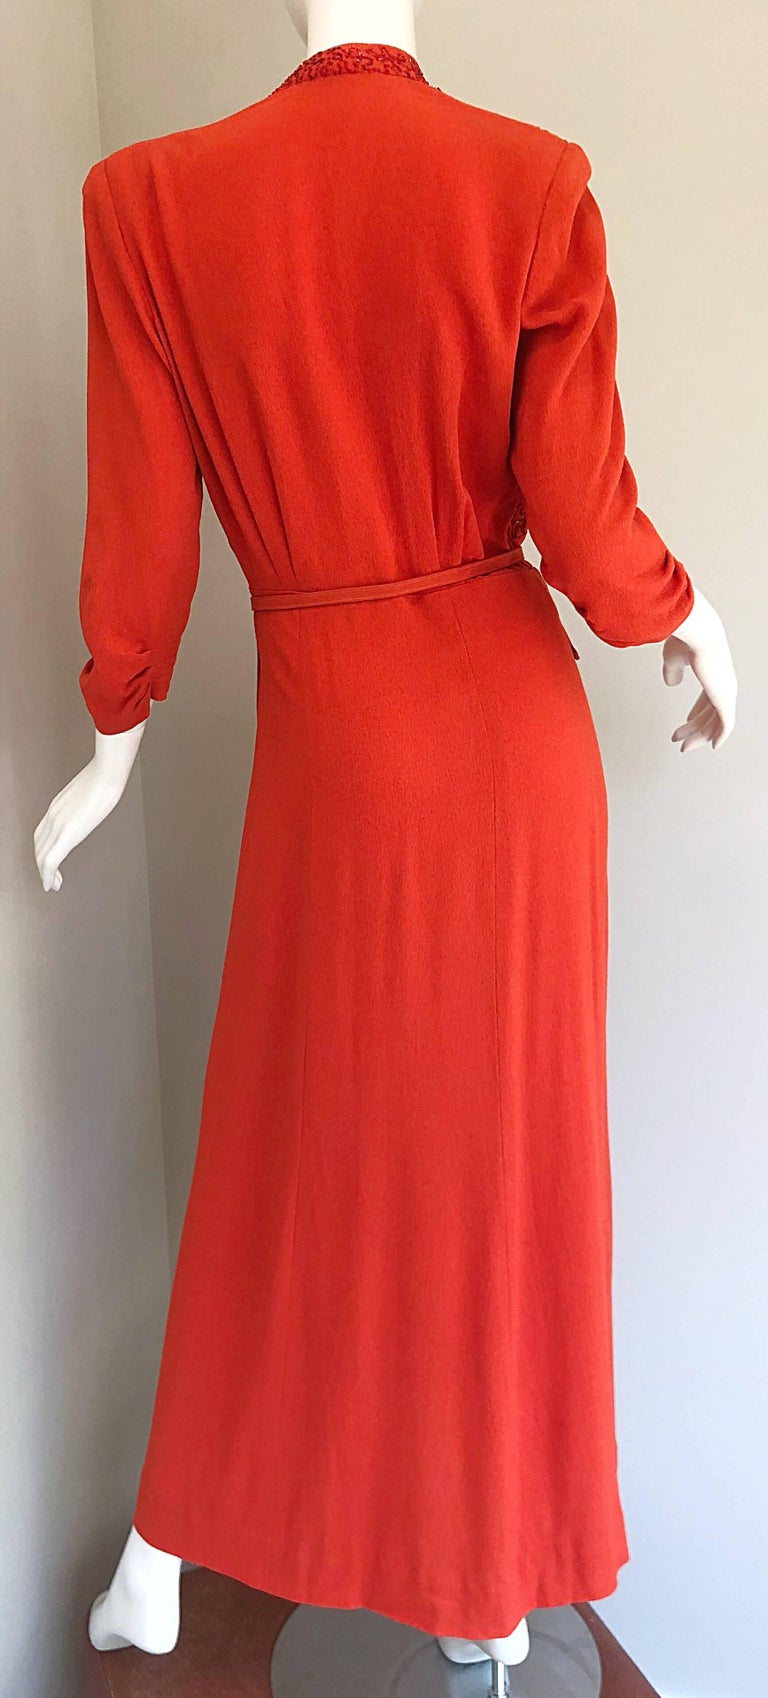 9f5b074462bf 1940s Kornhauser Original Burnt Orange Beaded Vintage 40s Couture Crepe Gown  For Sale 10